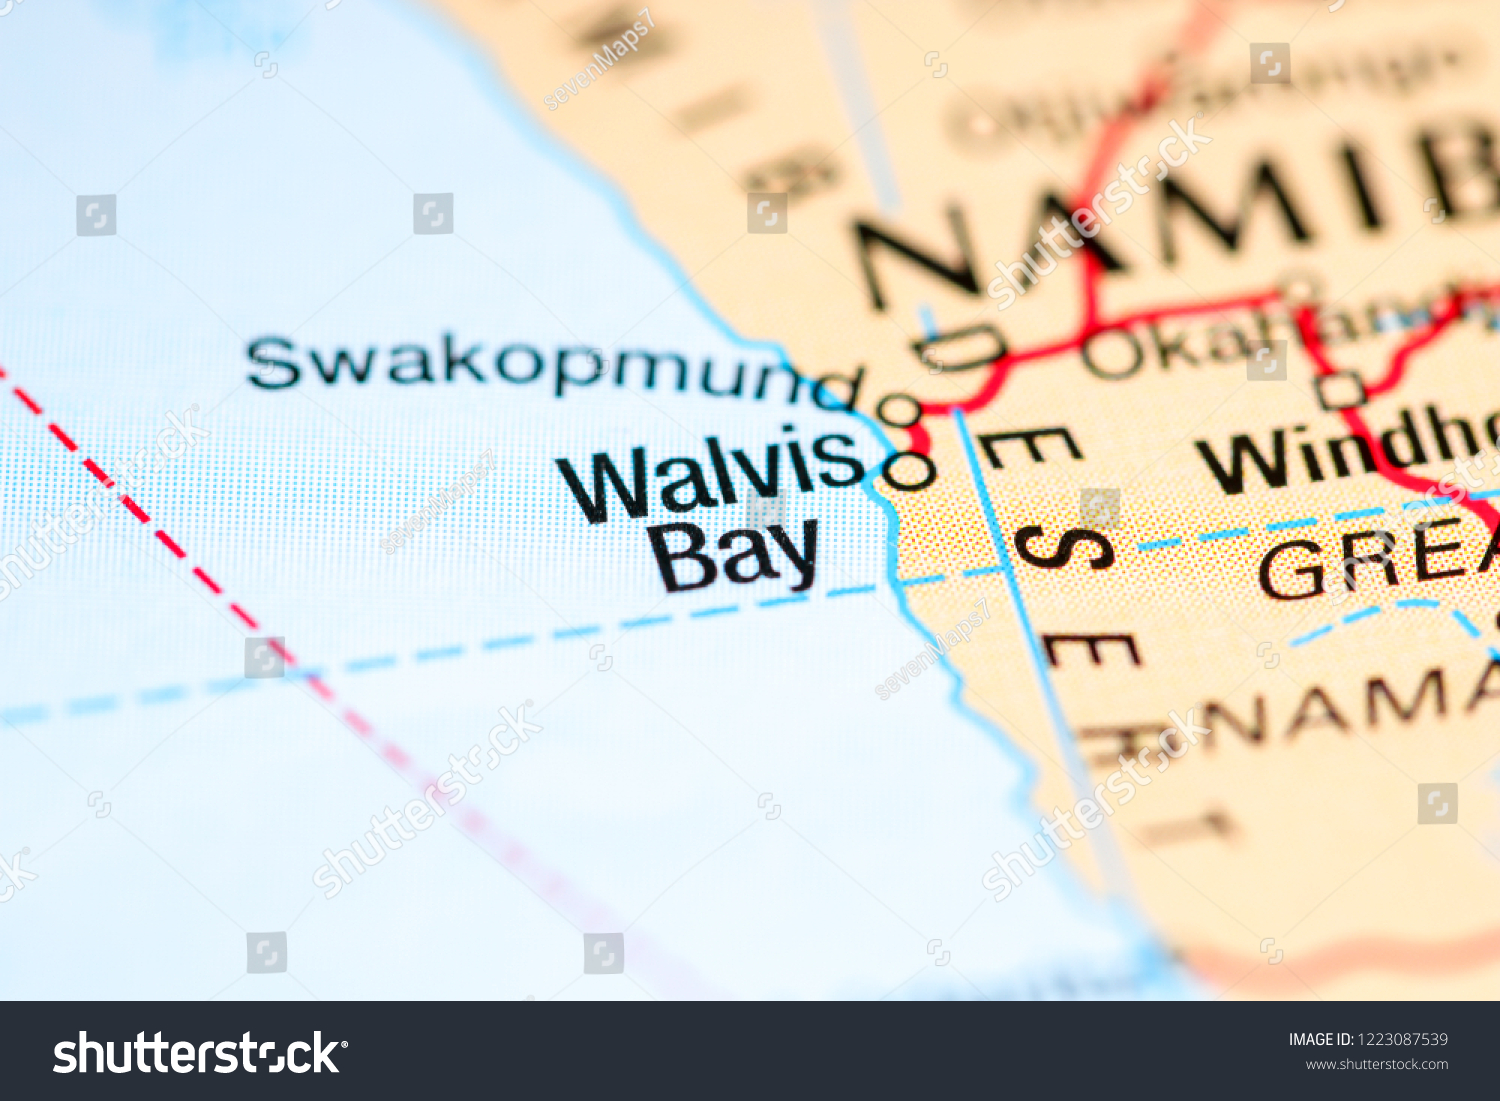 Walvis Bay Namibia Africa On Map Stock Photo Edit Now 1223087539